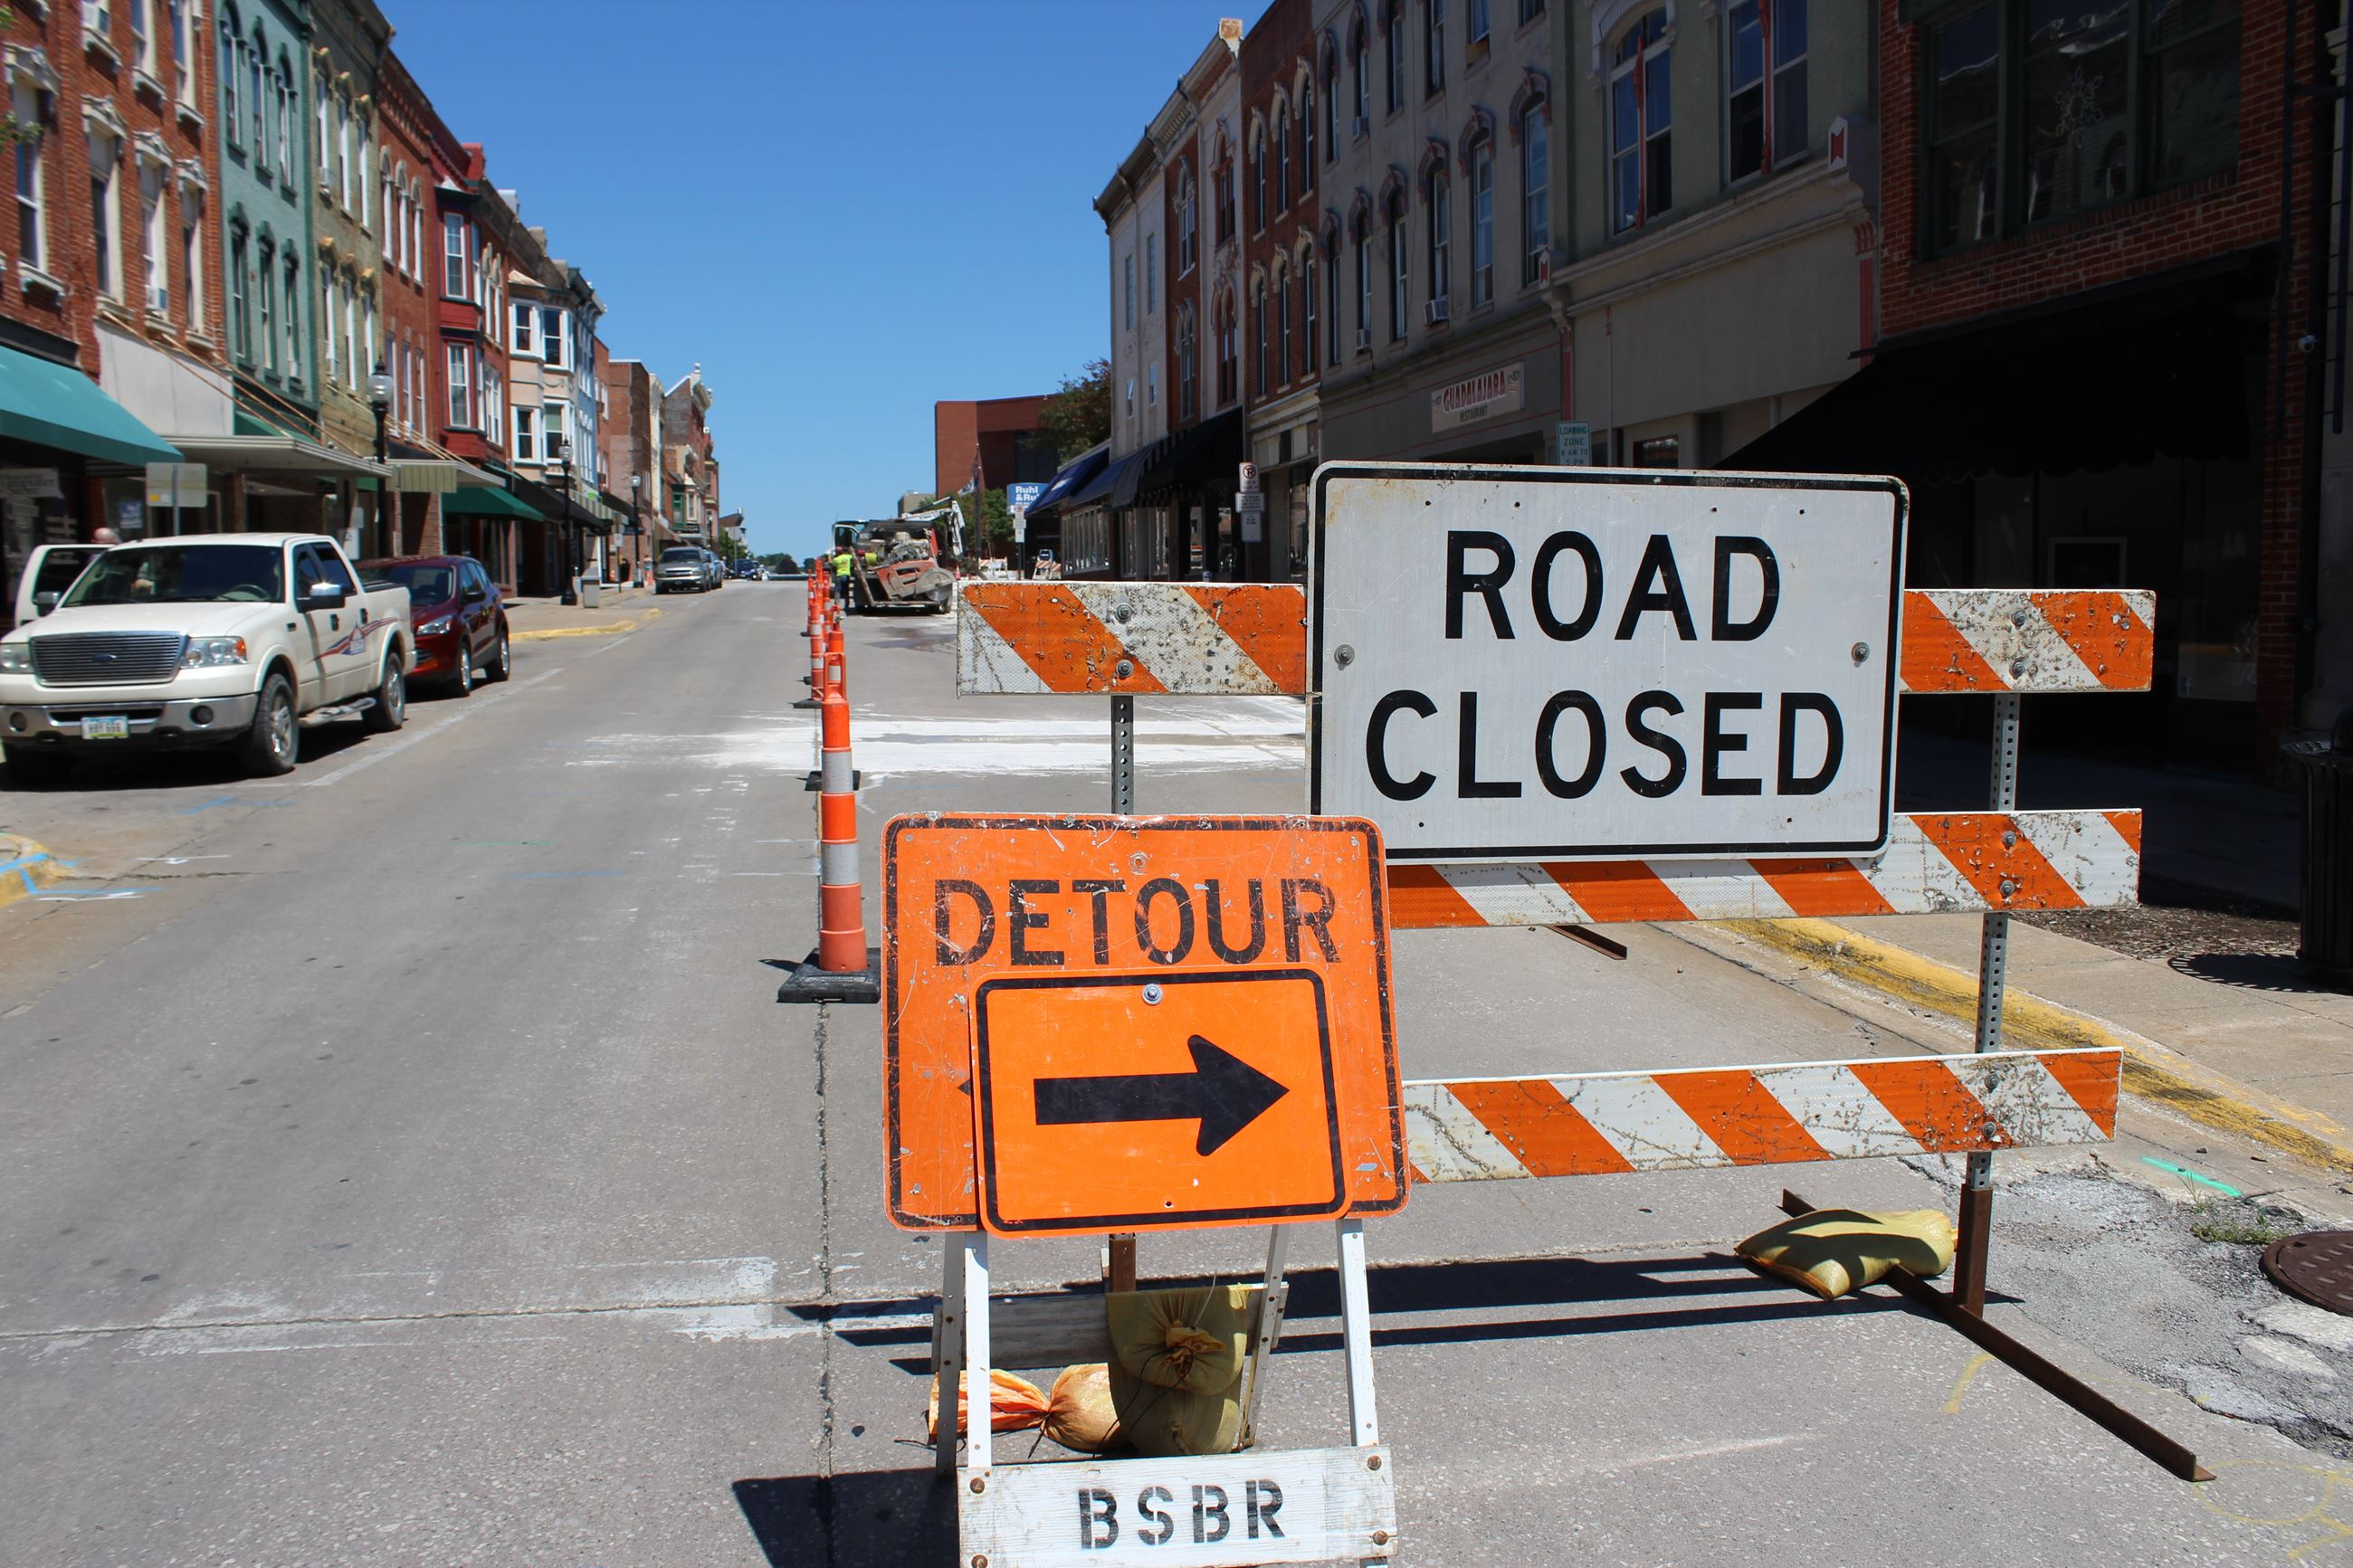 072820 2nd Street - Work begins in 200 block of East 2nd Street 002 (JPG)